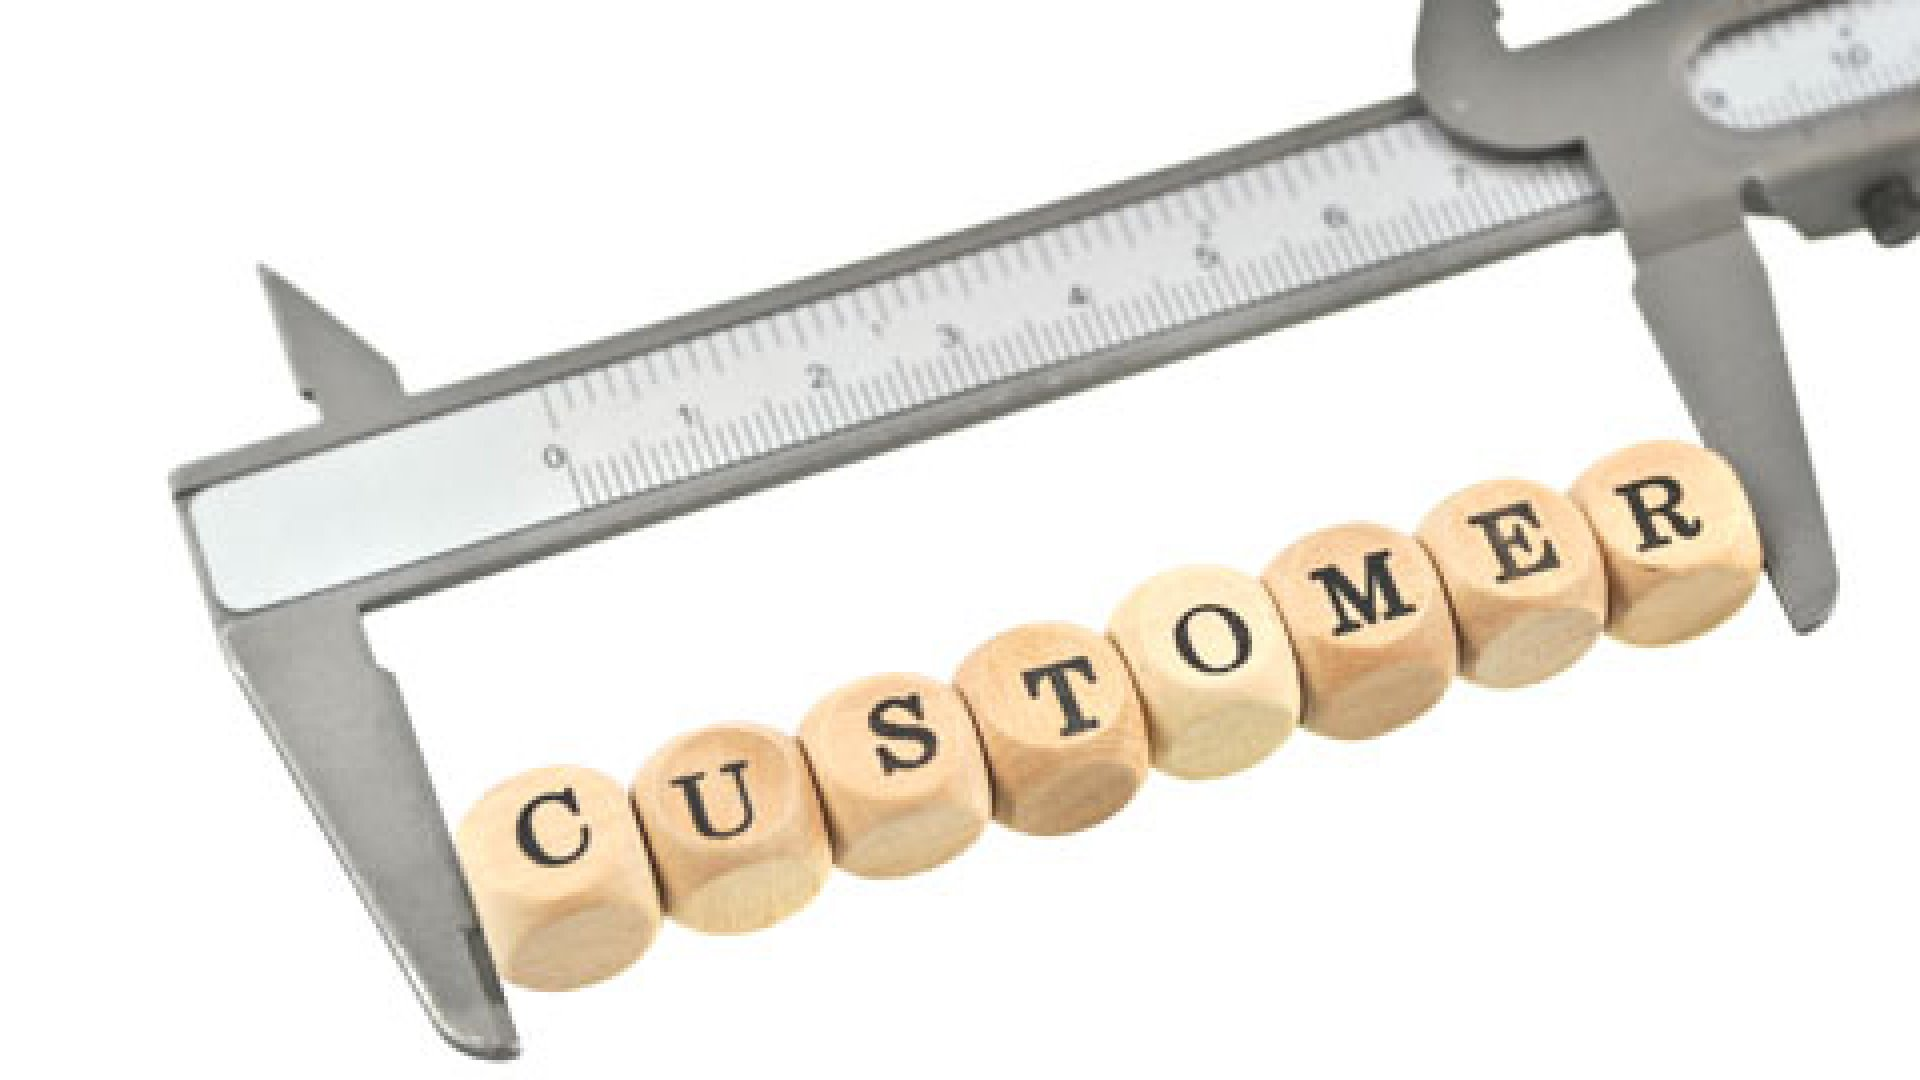 Figuring out which customers are valuable in the beginning can save a lot of trouble and cost.